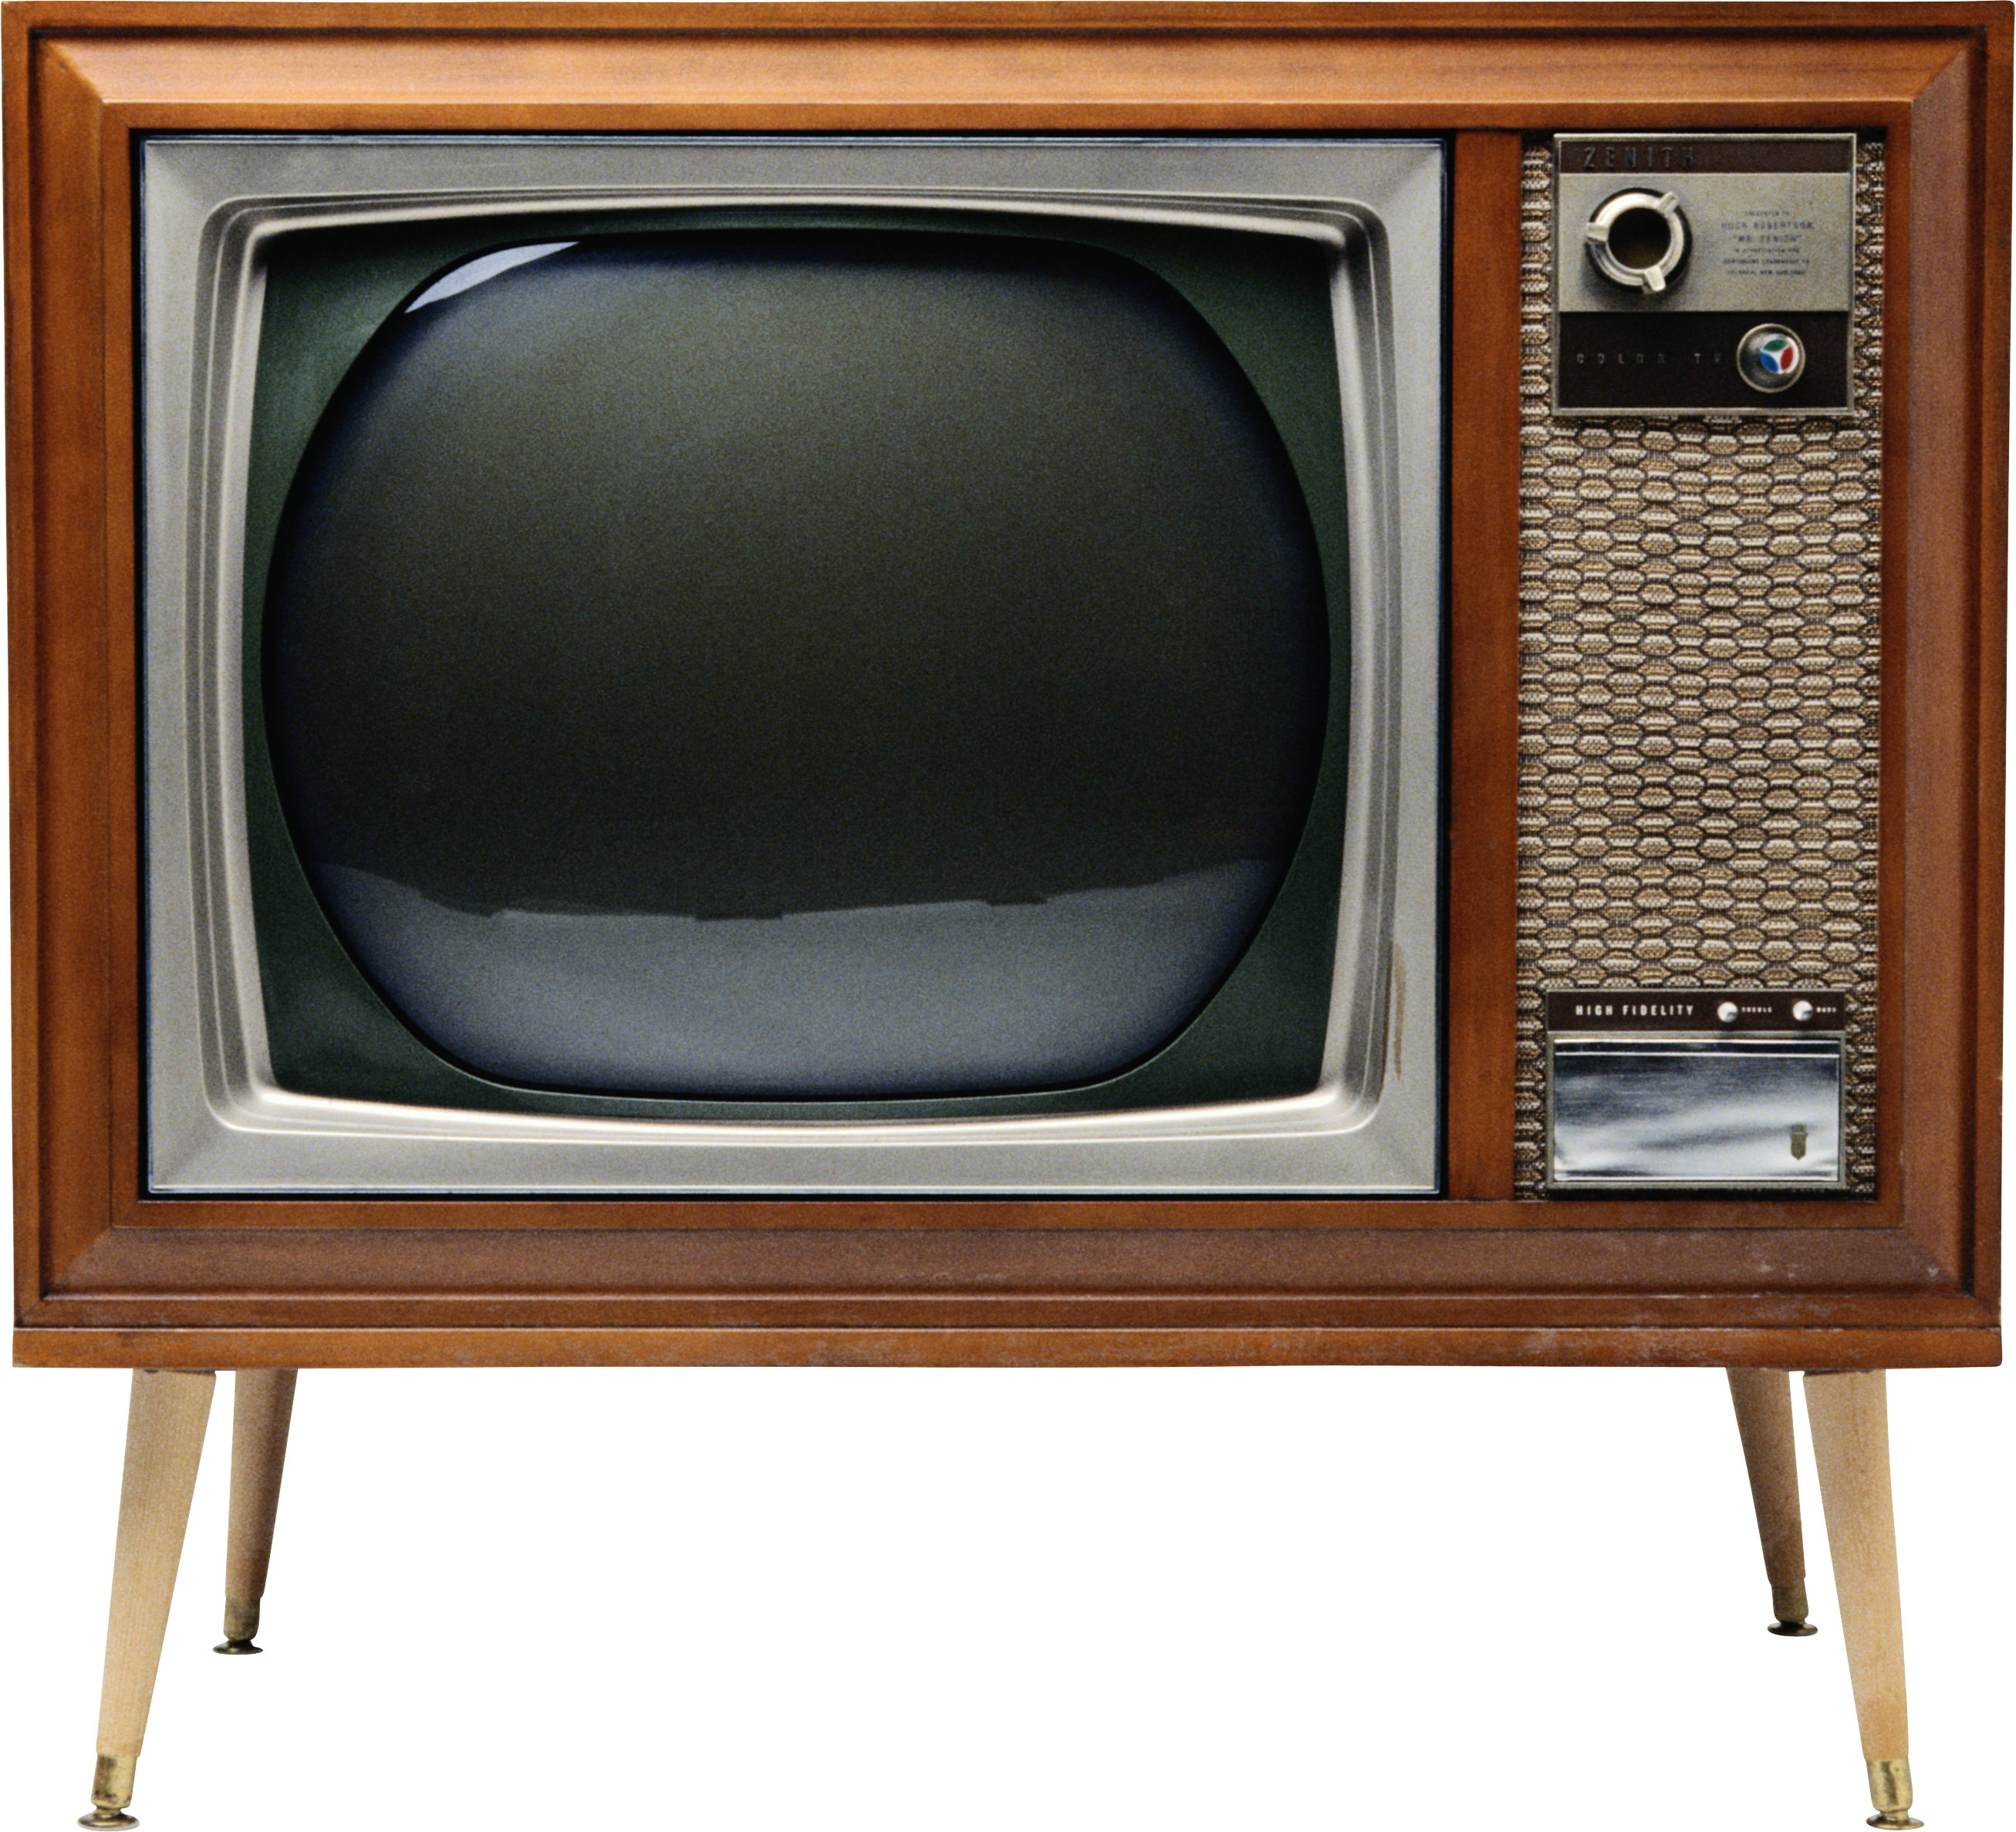 Old Television Png Image Vintage Television Television Box Tv